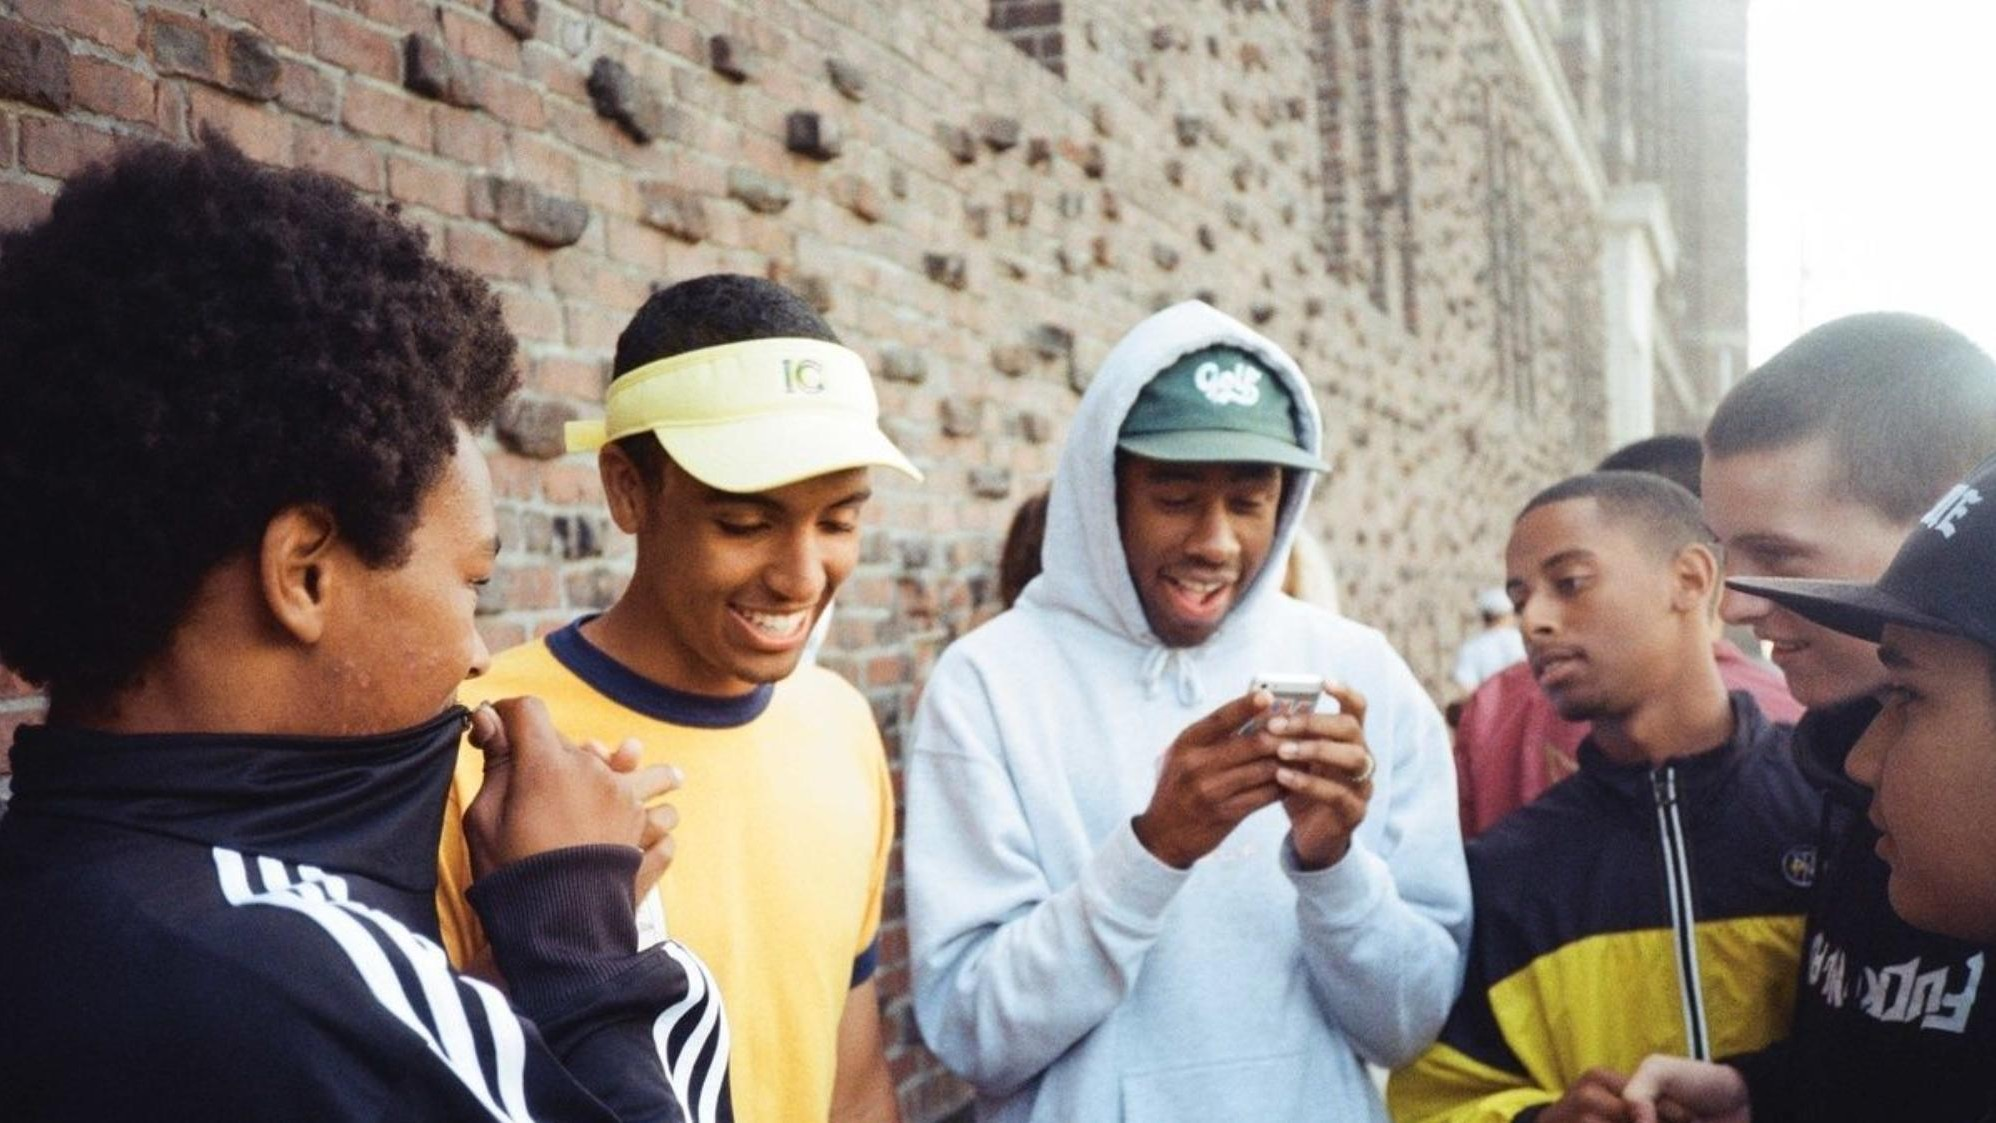 tyler the creator writes heartfelt essay on how pharrell changed by 2006 pharrell williams had long since established himself as one of hip hop s most creative thinkers and out of the box beatsmiths seminal producer